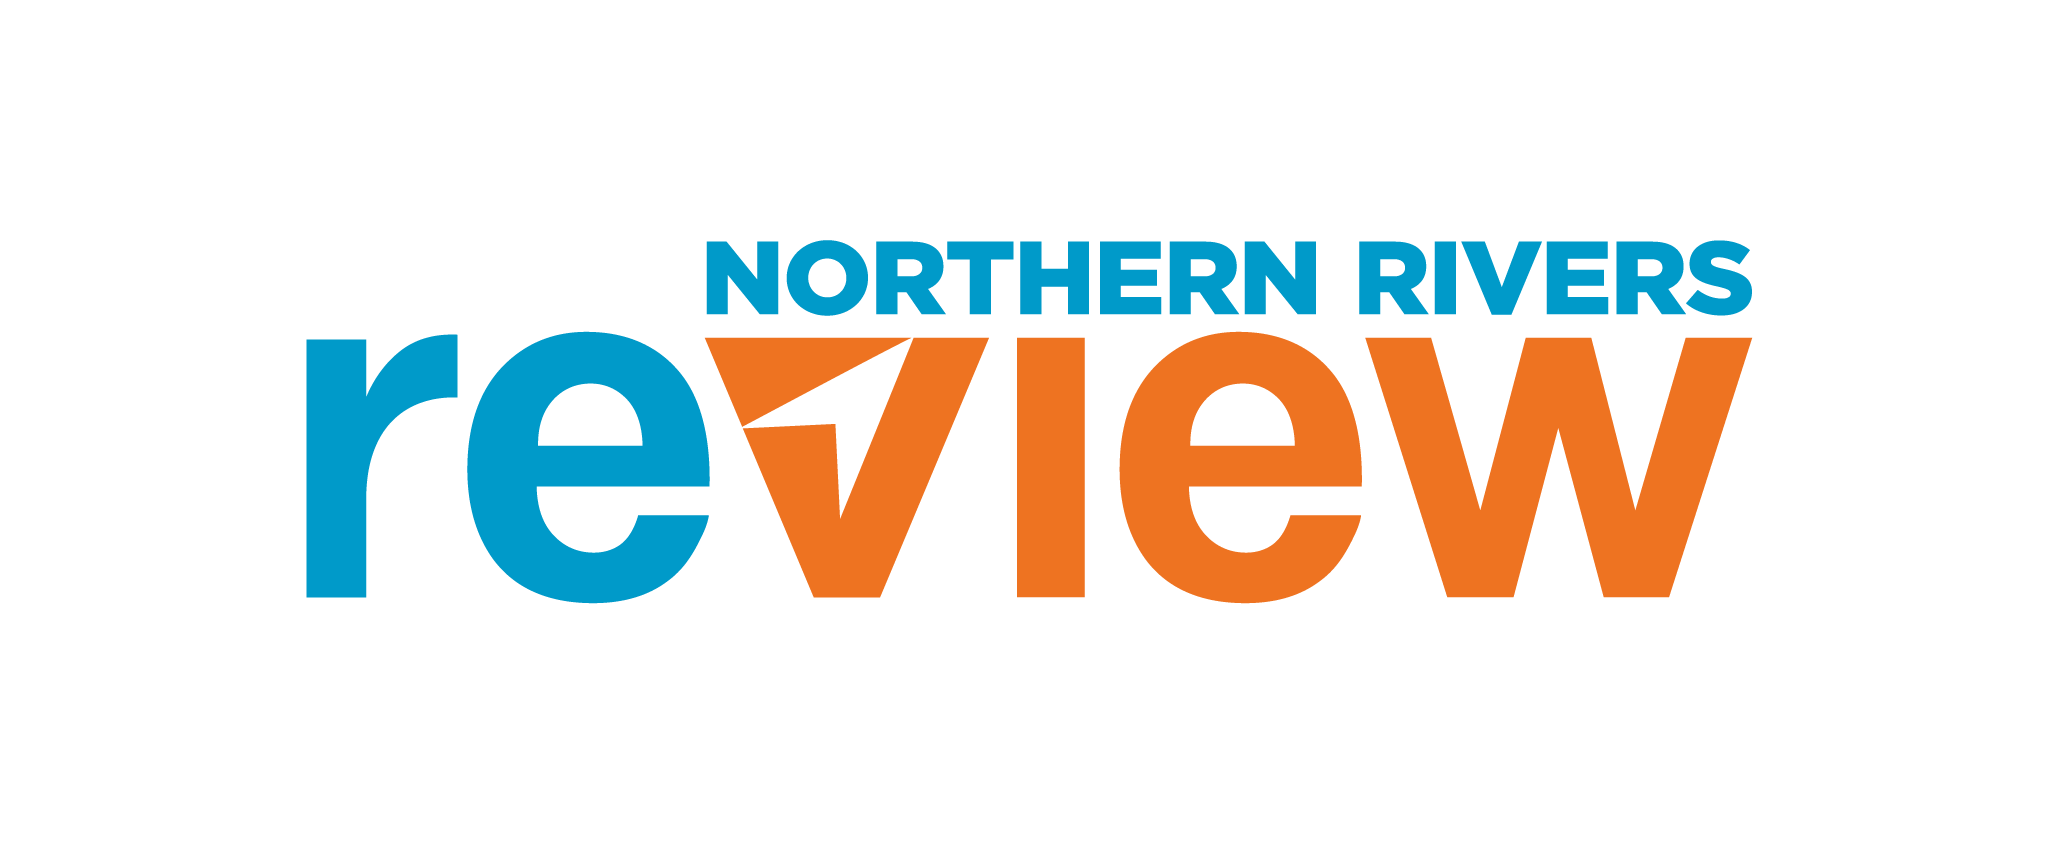 http://byronwritersfestival.com/wp-content/uploads/2021/06/Northern-Rivers-Review.png